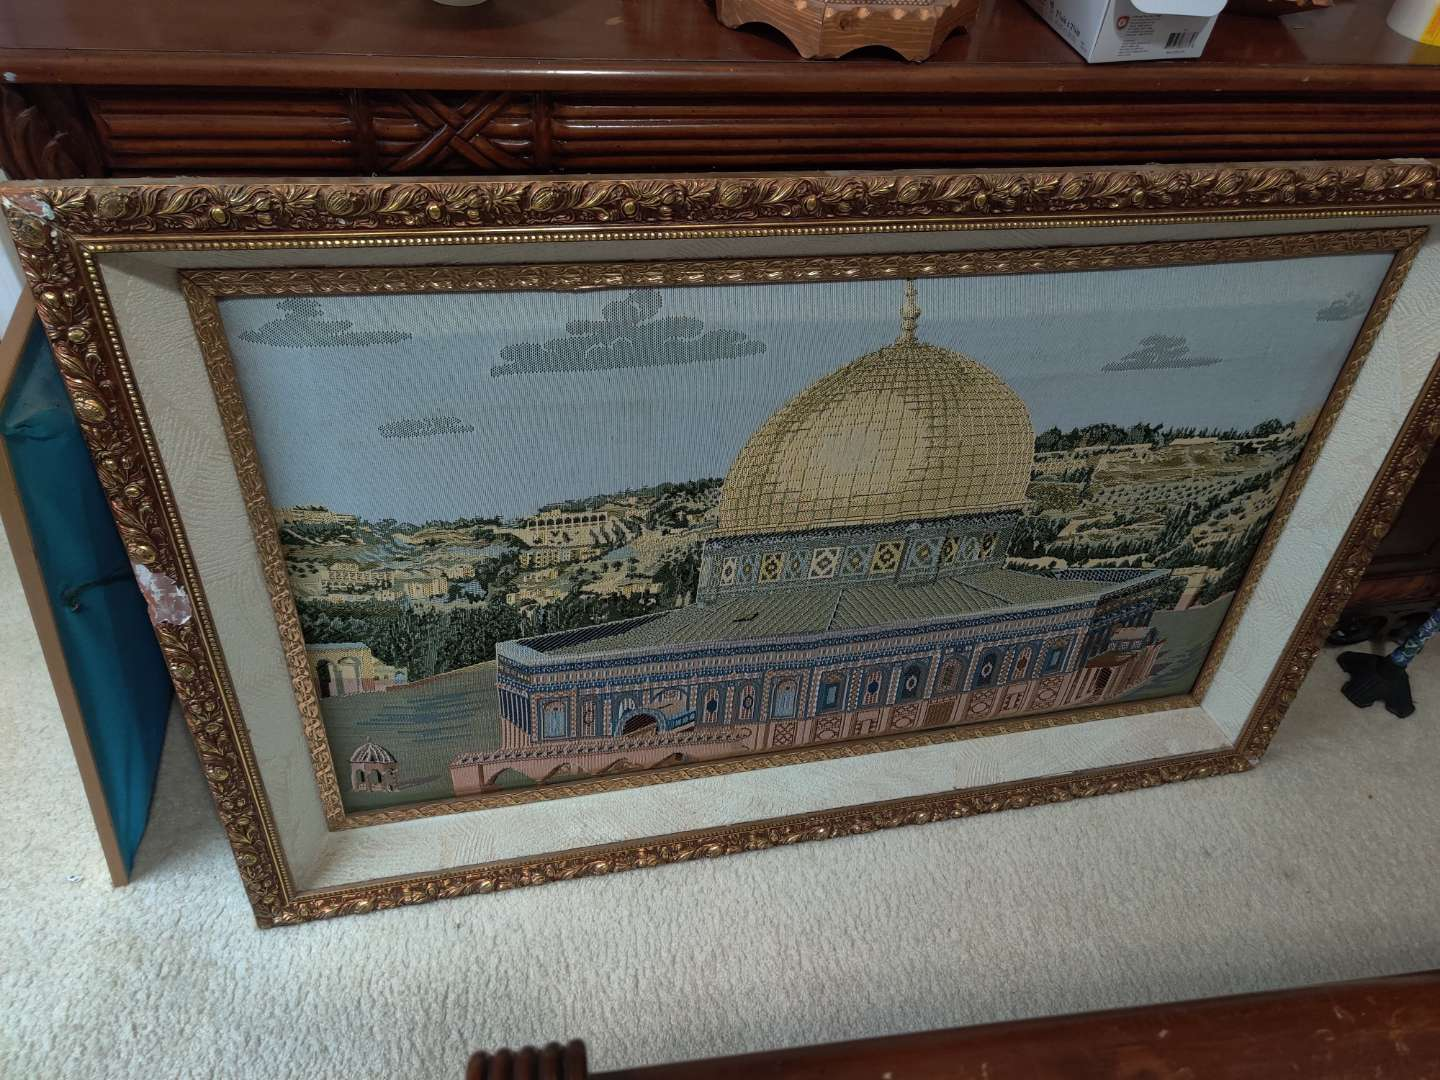 60 Palestine dome of the Rock 51x33 embroidered few bad places on the frame cost $600 new no glass